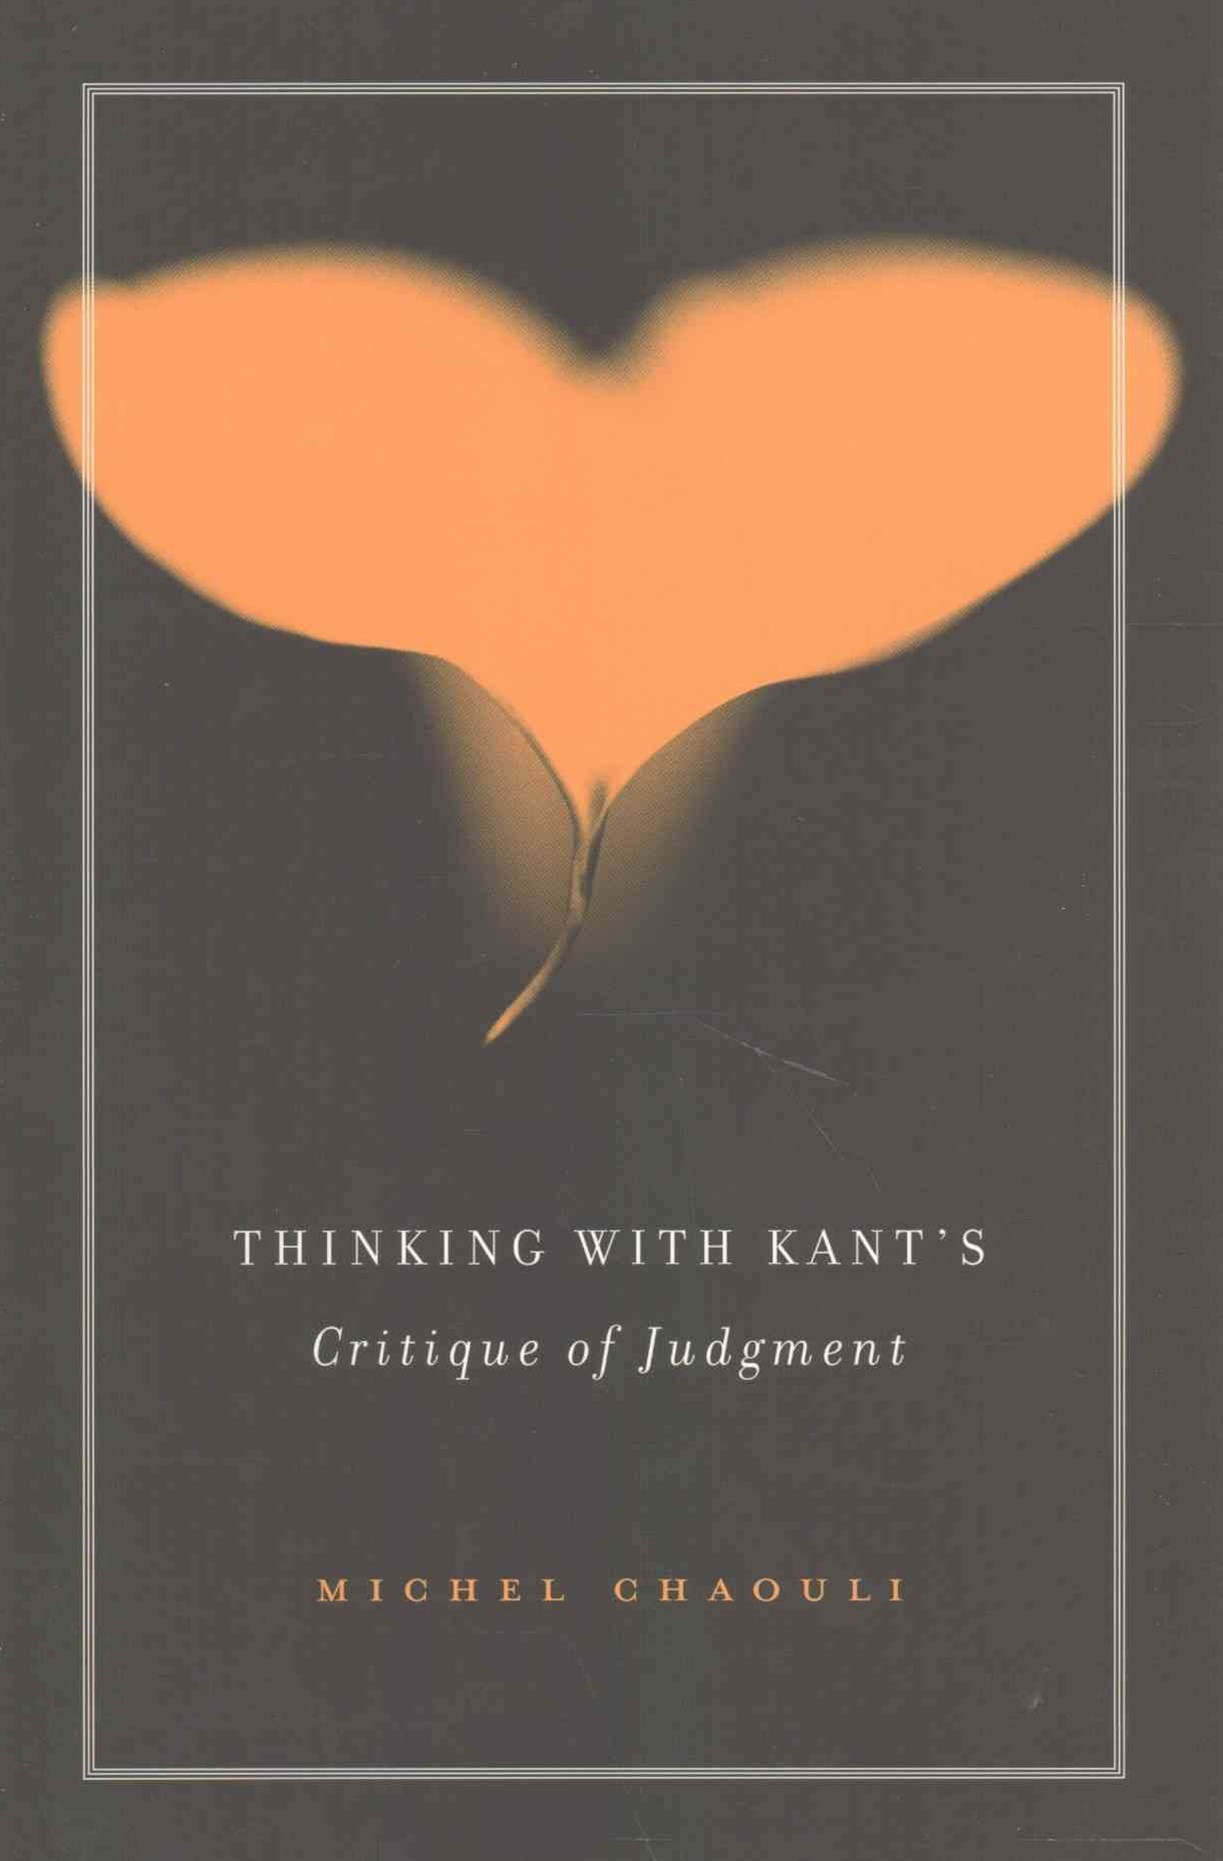 Thinking with Kant's Critique of Judgment